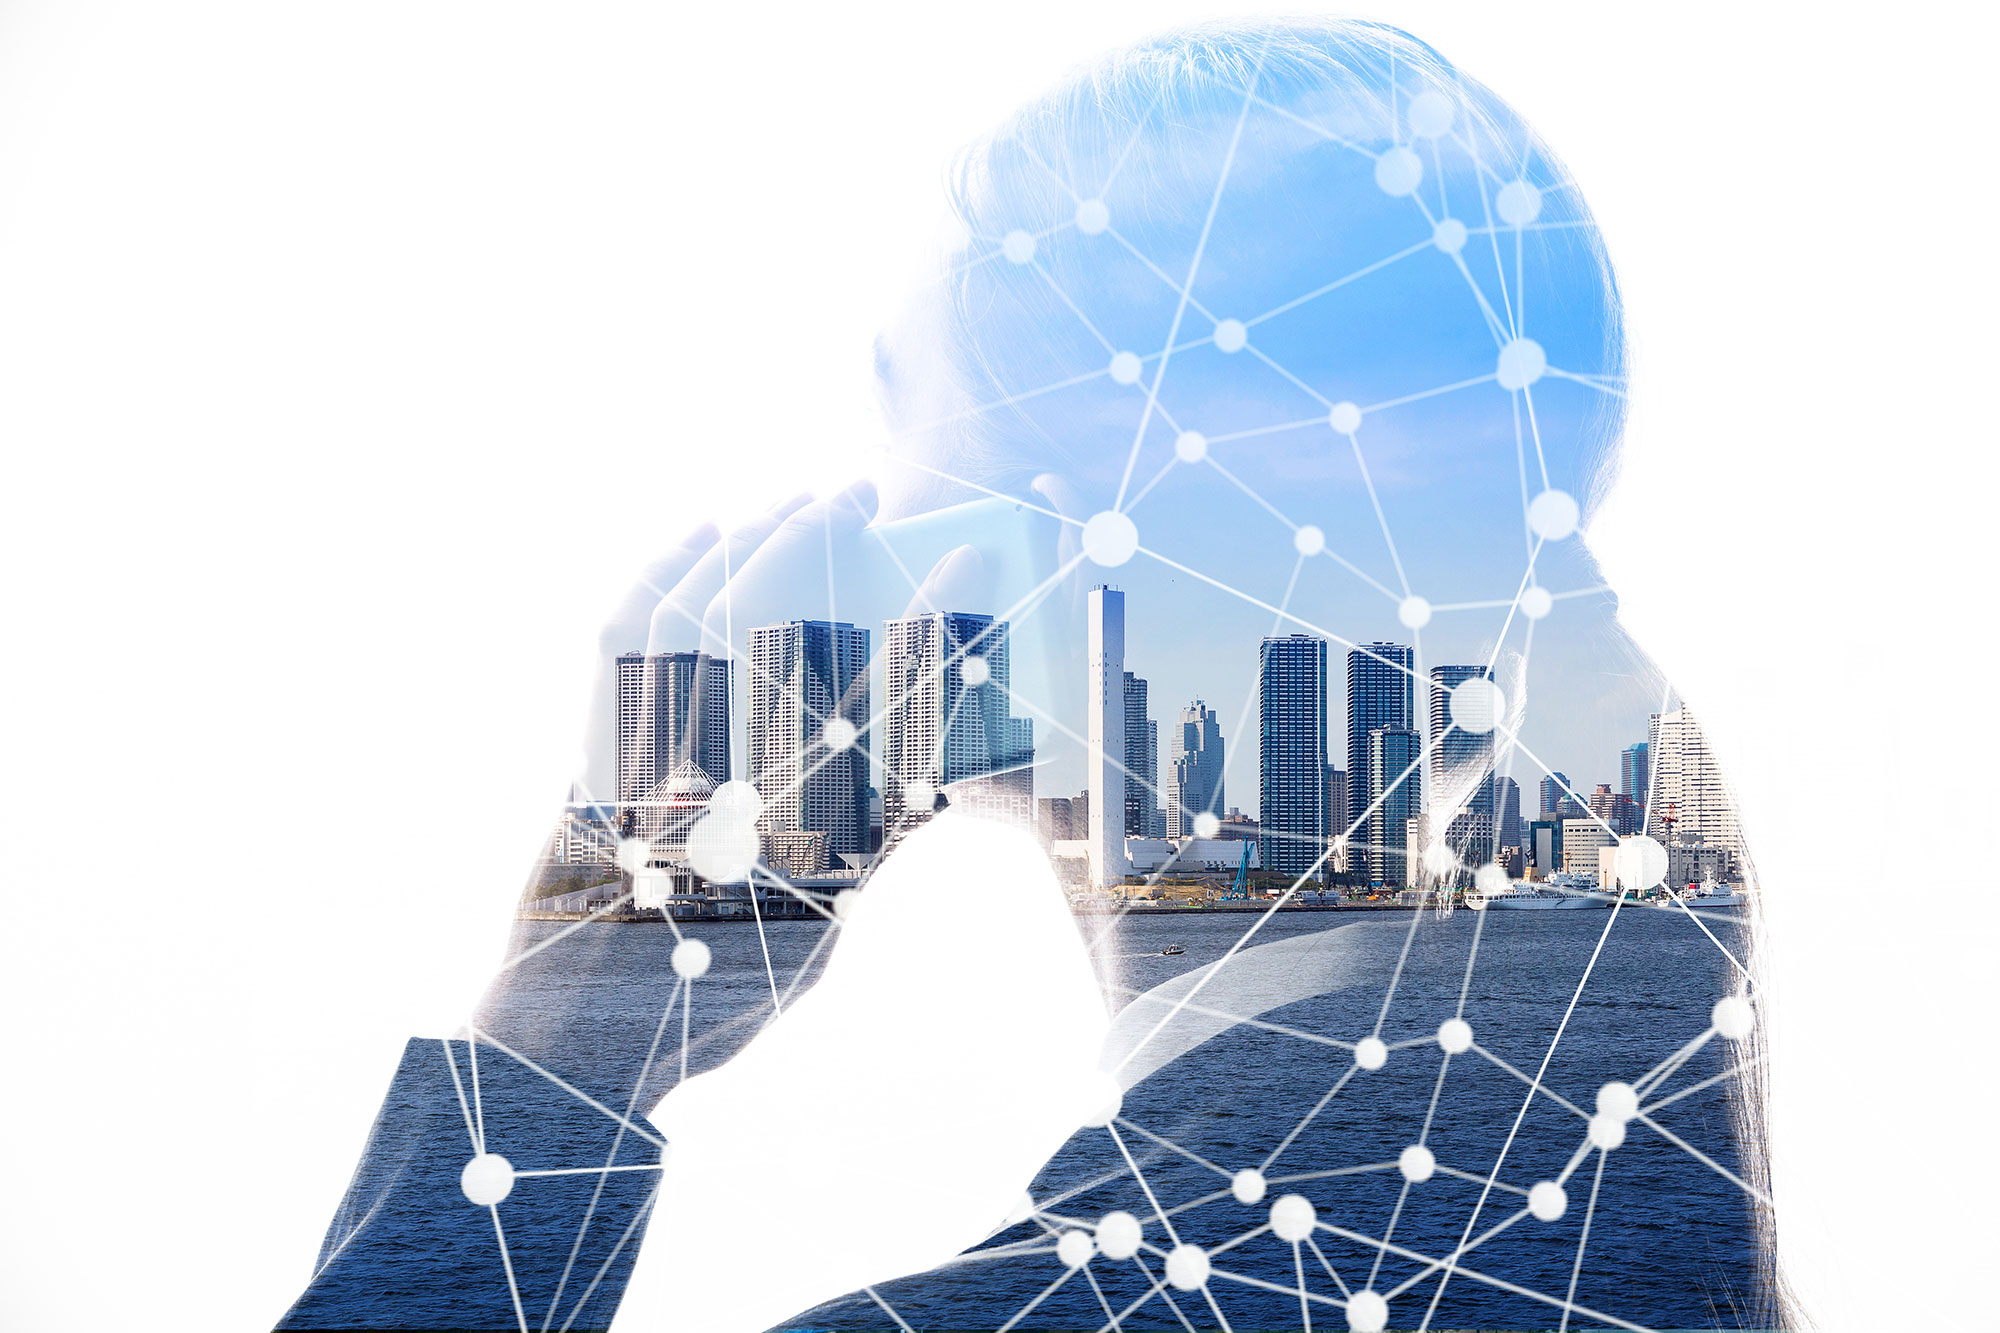 woman-using-smartphone-city-skyline-network-connections-double-exposure